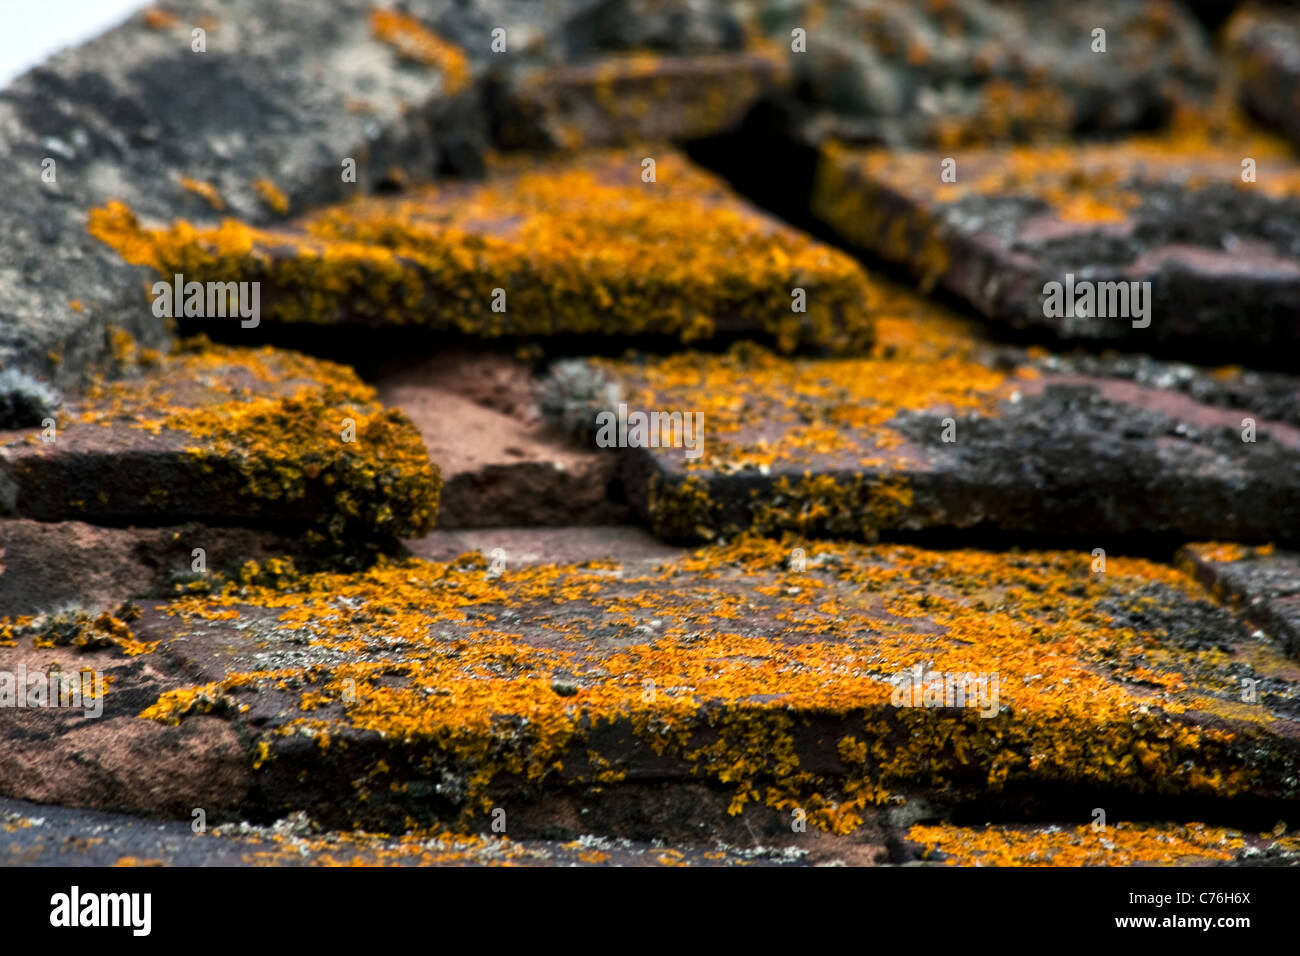 Moss growing on Roof Tiles, Formby, UK - Stock Image